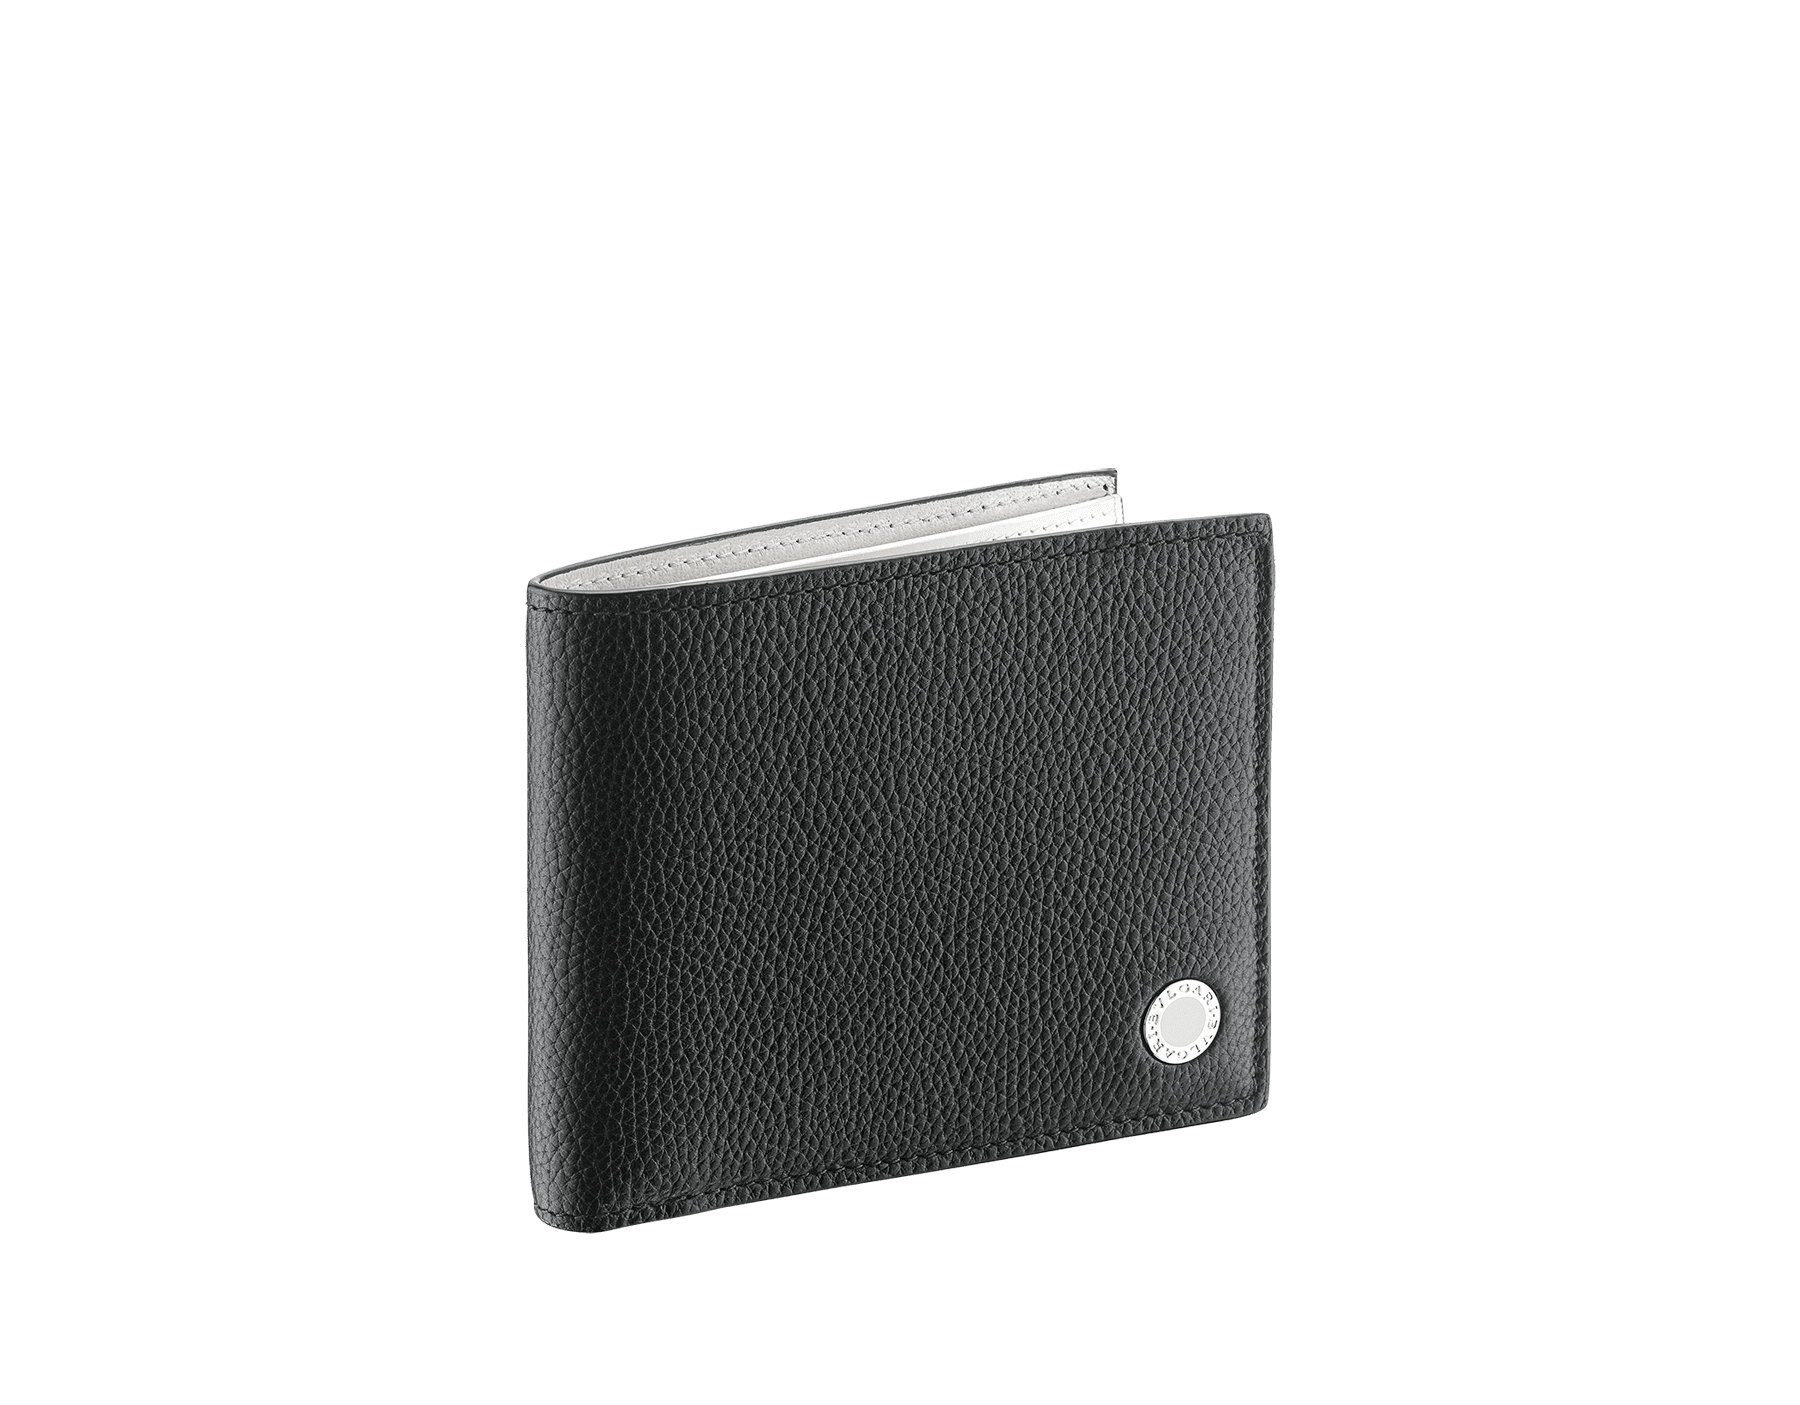 """BVLGARI BVLGARI"" hipster compact wallet in mimetic jade soft full grain calf leather and fire amber calf leather. Iconic logo decoration in palladium plated brass colored in fire amber enamel. BBM-WLT-HIPST-8C-SFGCL image 1"